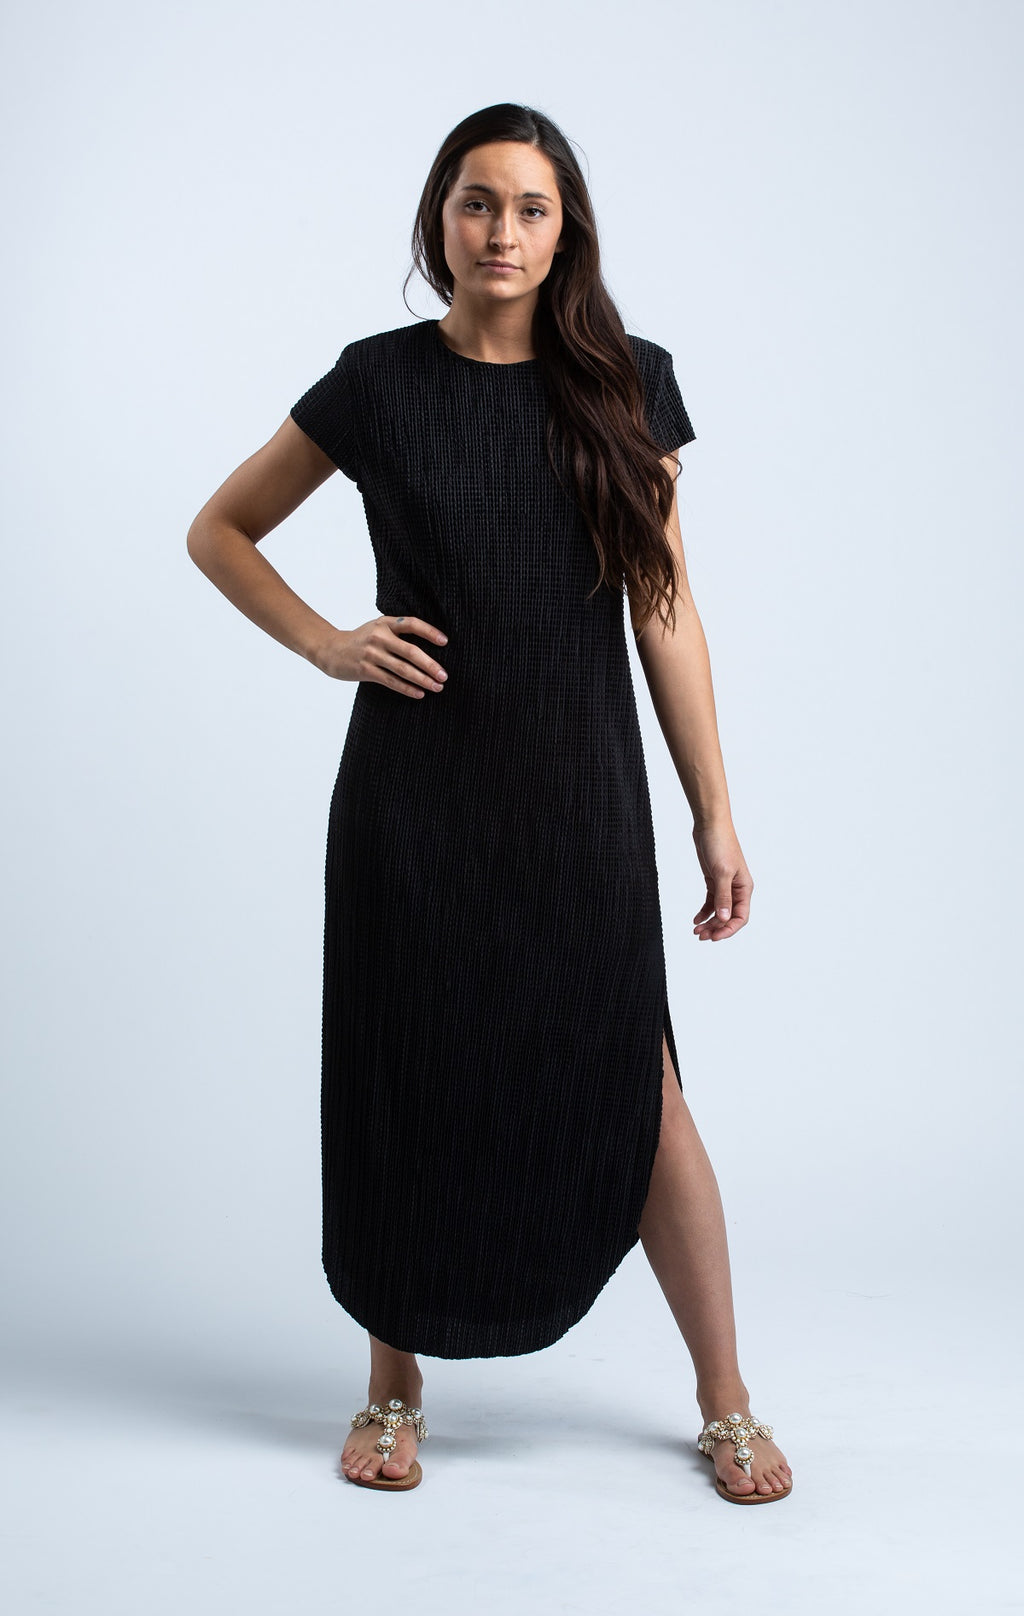 SABINA MUSAYEV - SHIRIN DRESS IN BLACK - Trendy Fox Boutique